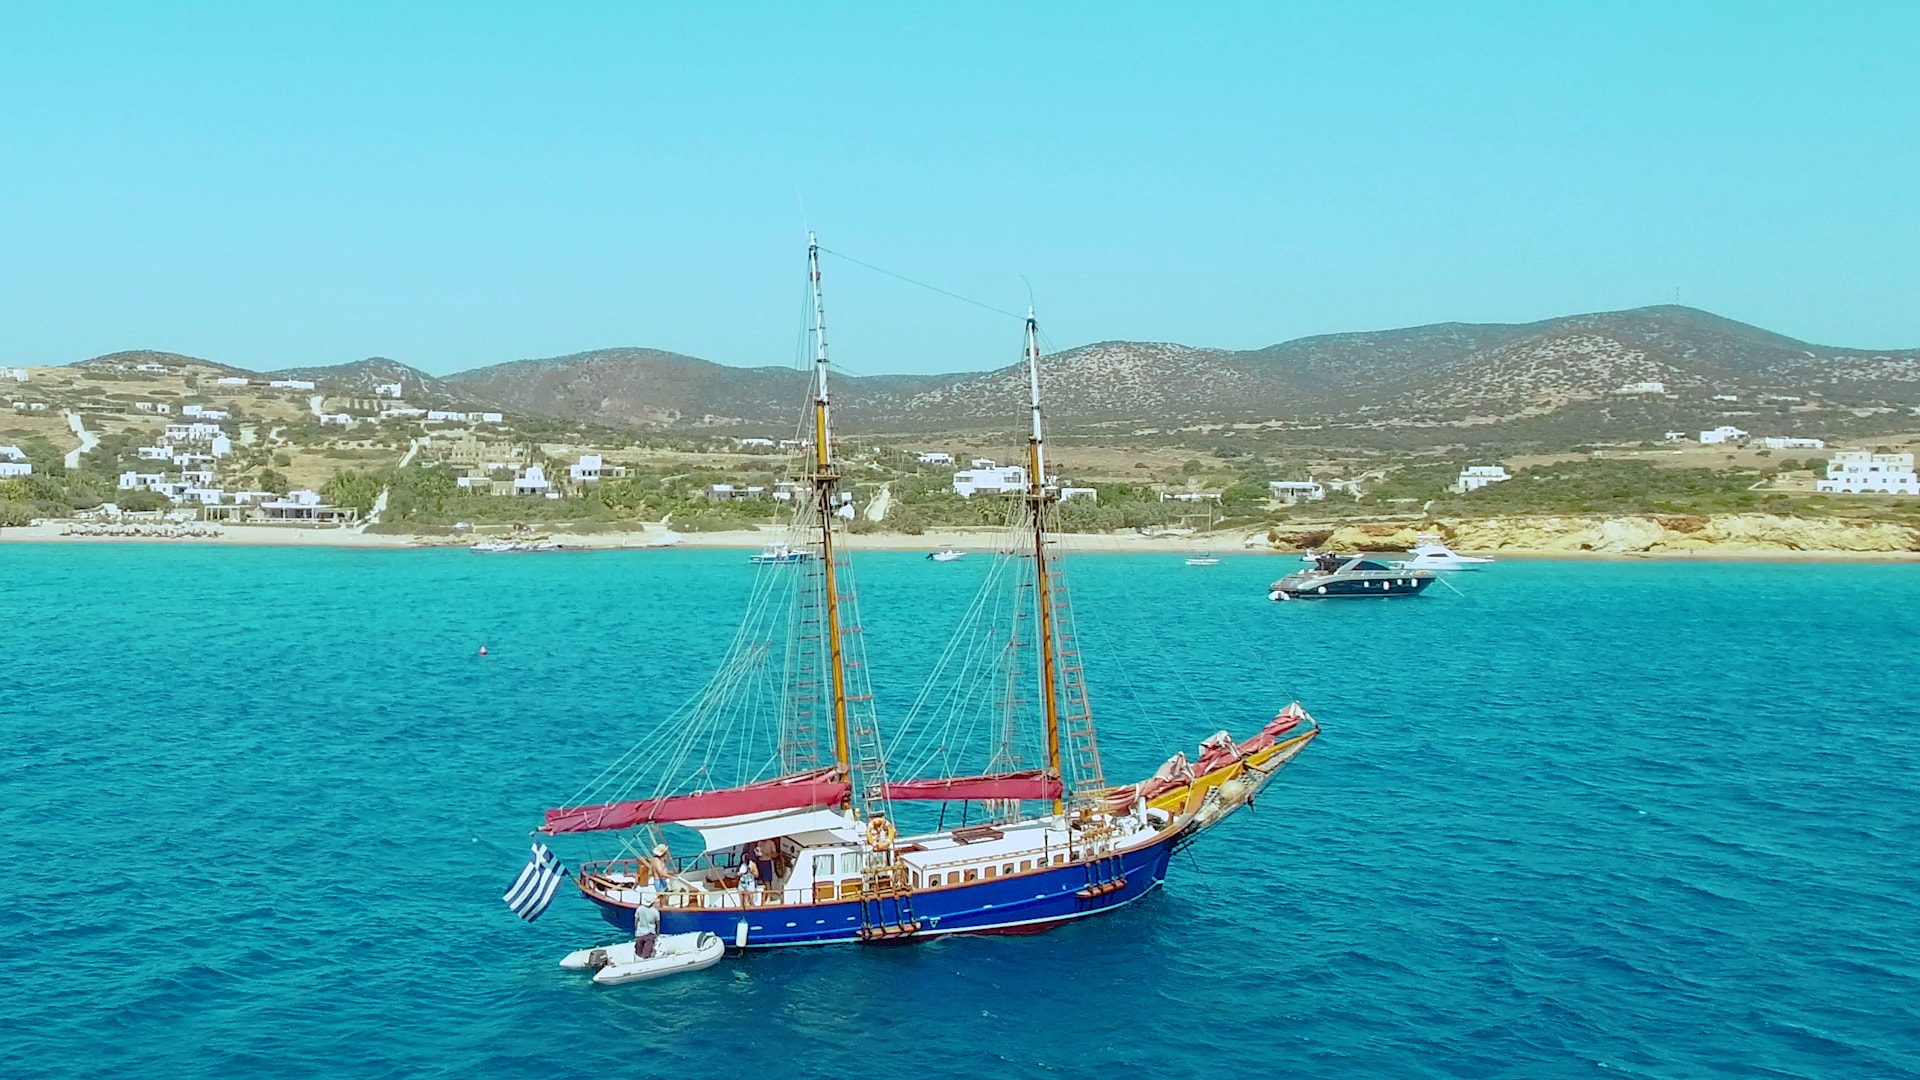 visit-cyclades_private-cruise_paros-islands_boat-view-3